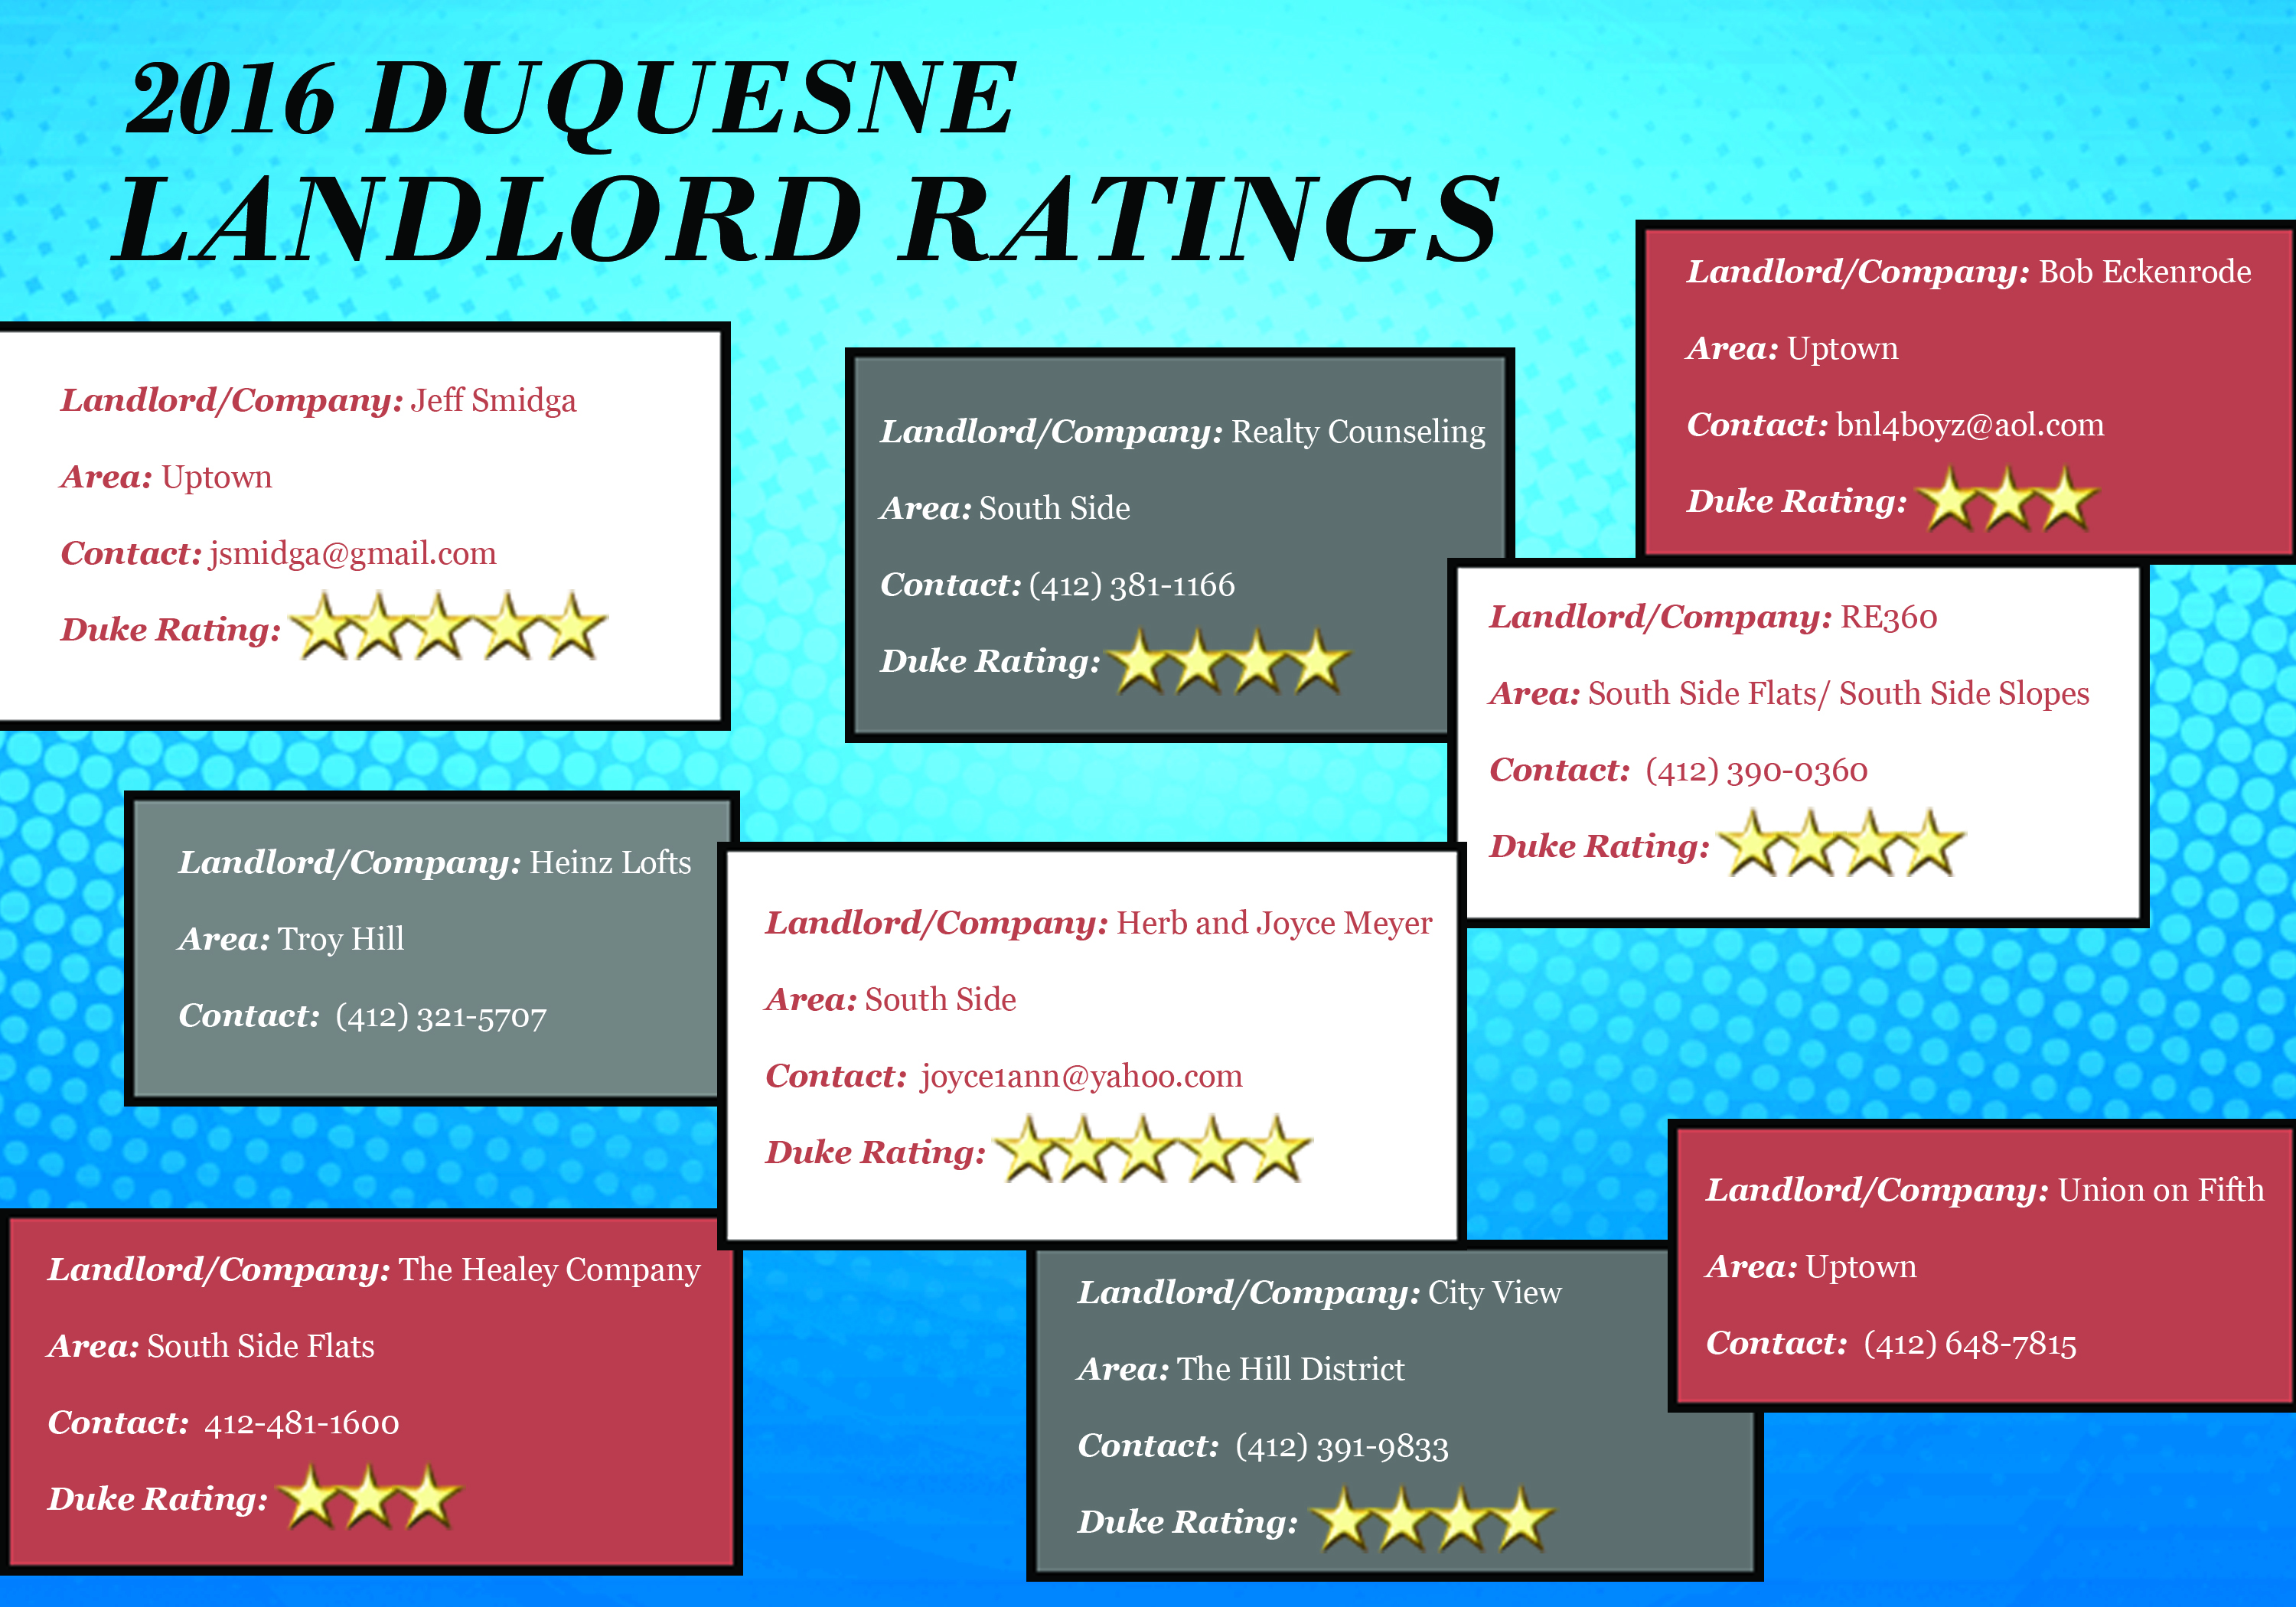 Landlord Ratings Infographic